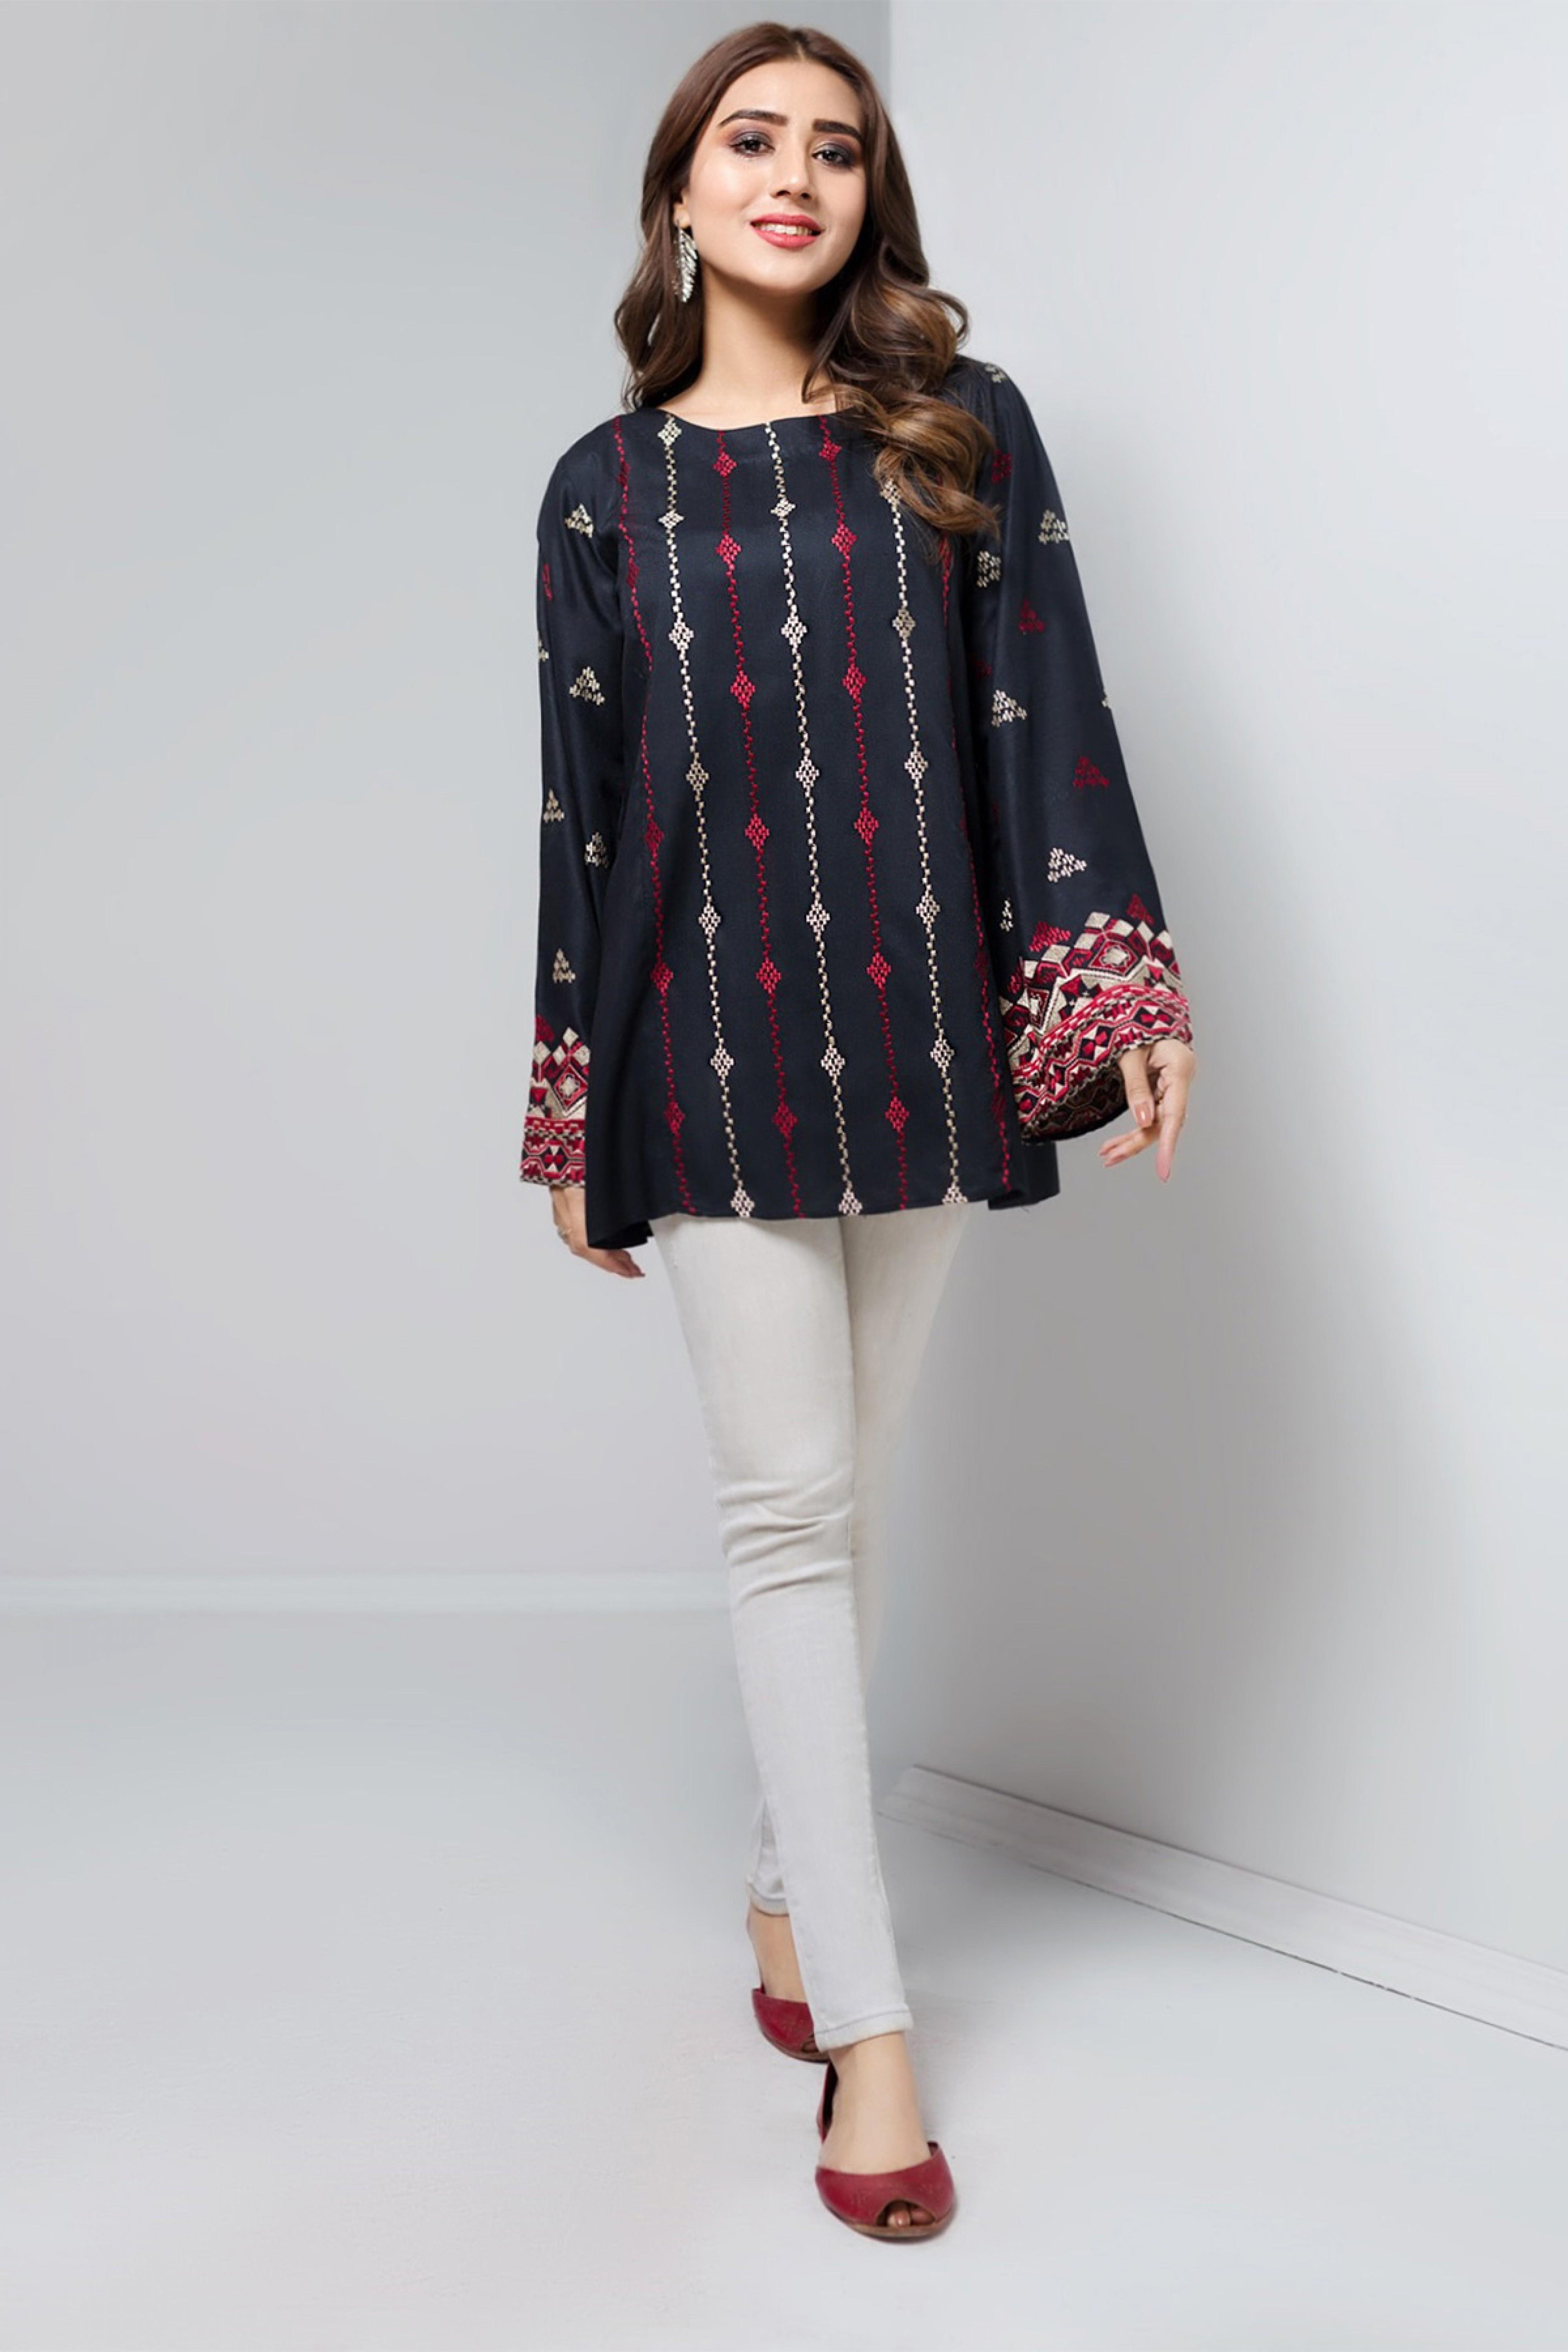 RADIANT BLACK(Embroidered Top)